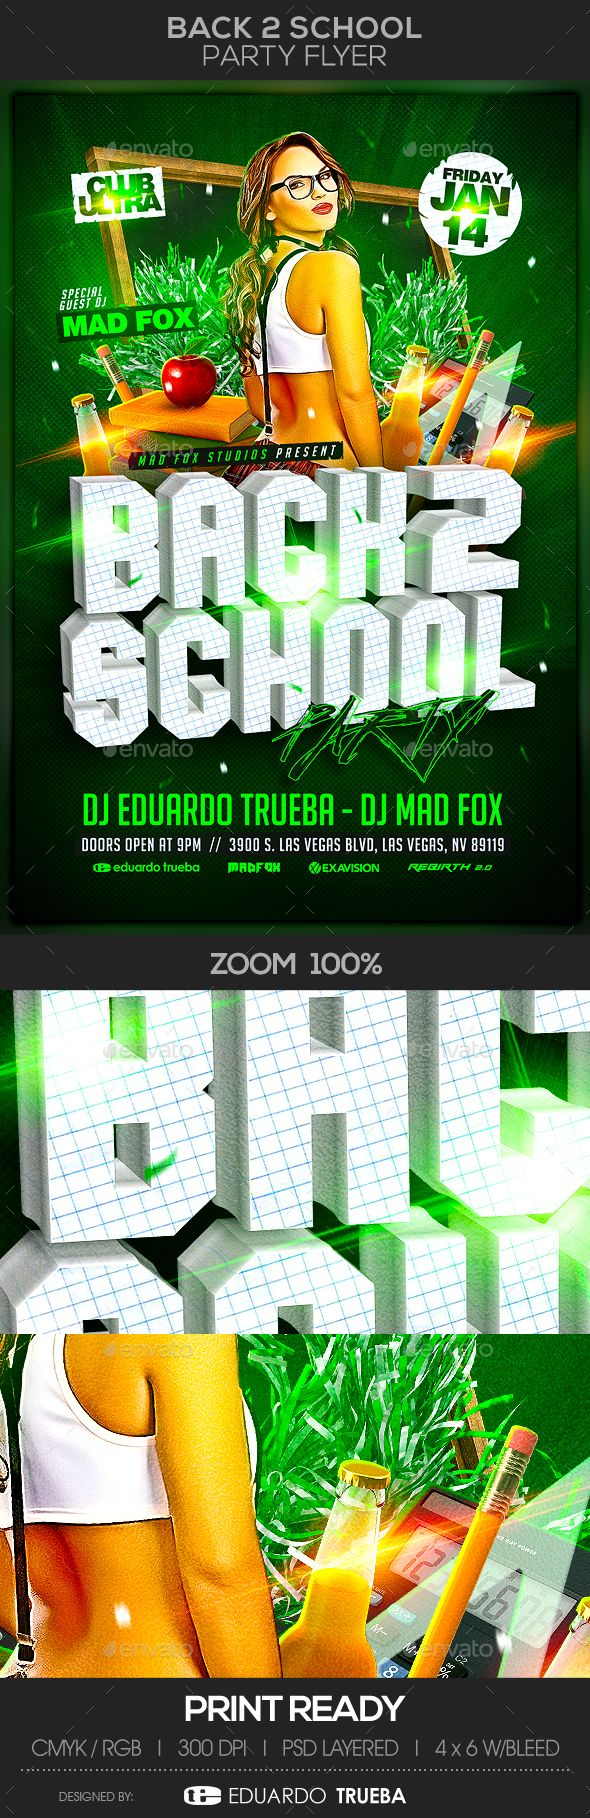 Back 2 School Party Flyer Template PSD